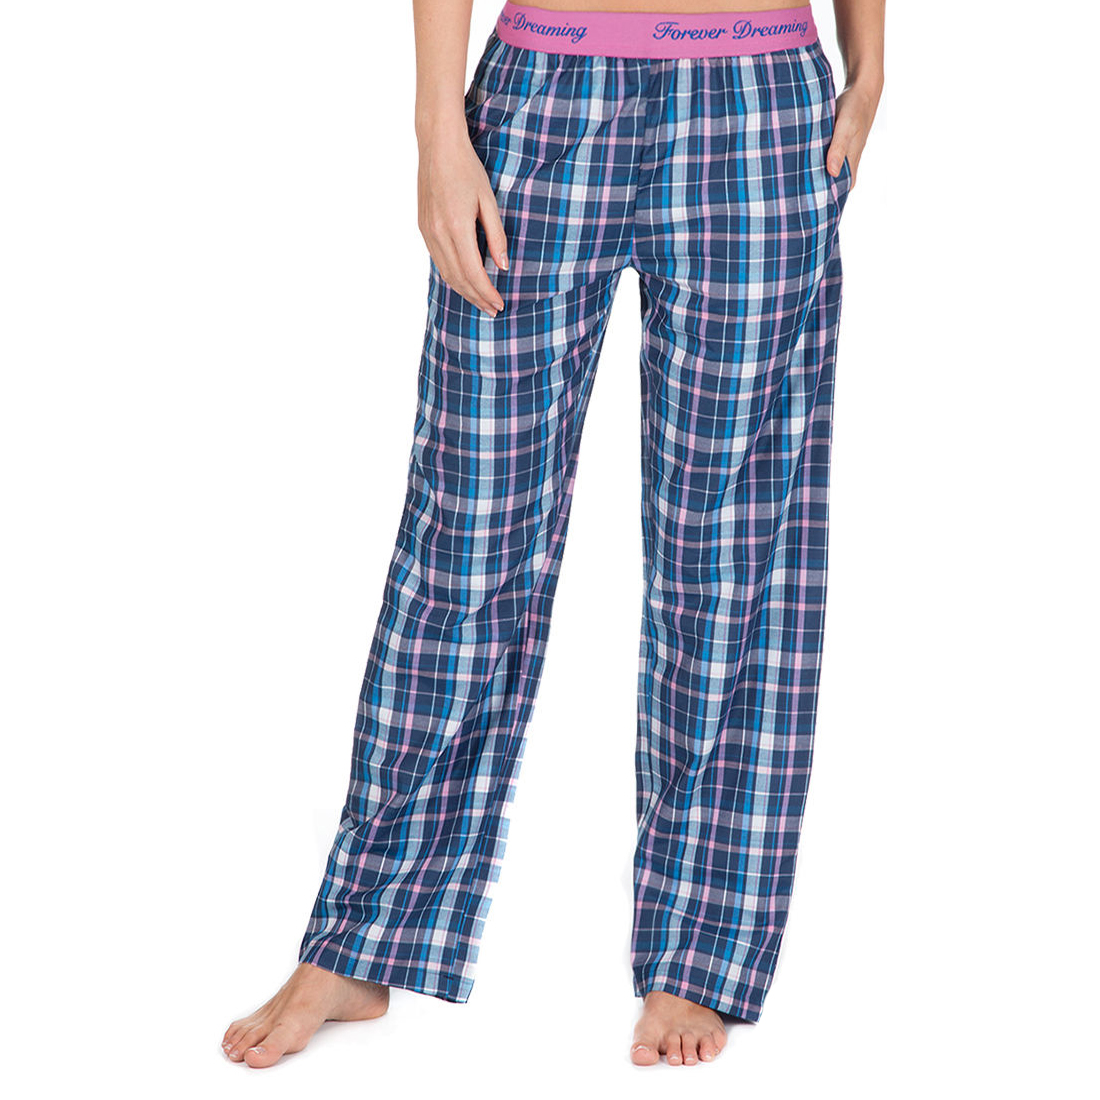 Women's Clothing Bottoms Checkered PJ Pants Forever Dreaming Ladies Pyjama Bottoms